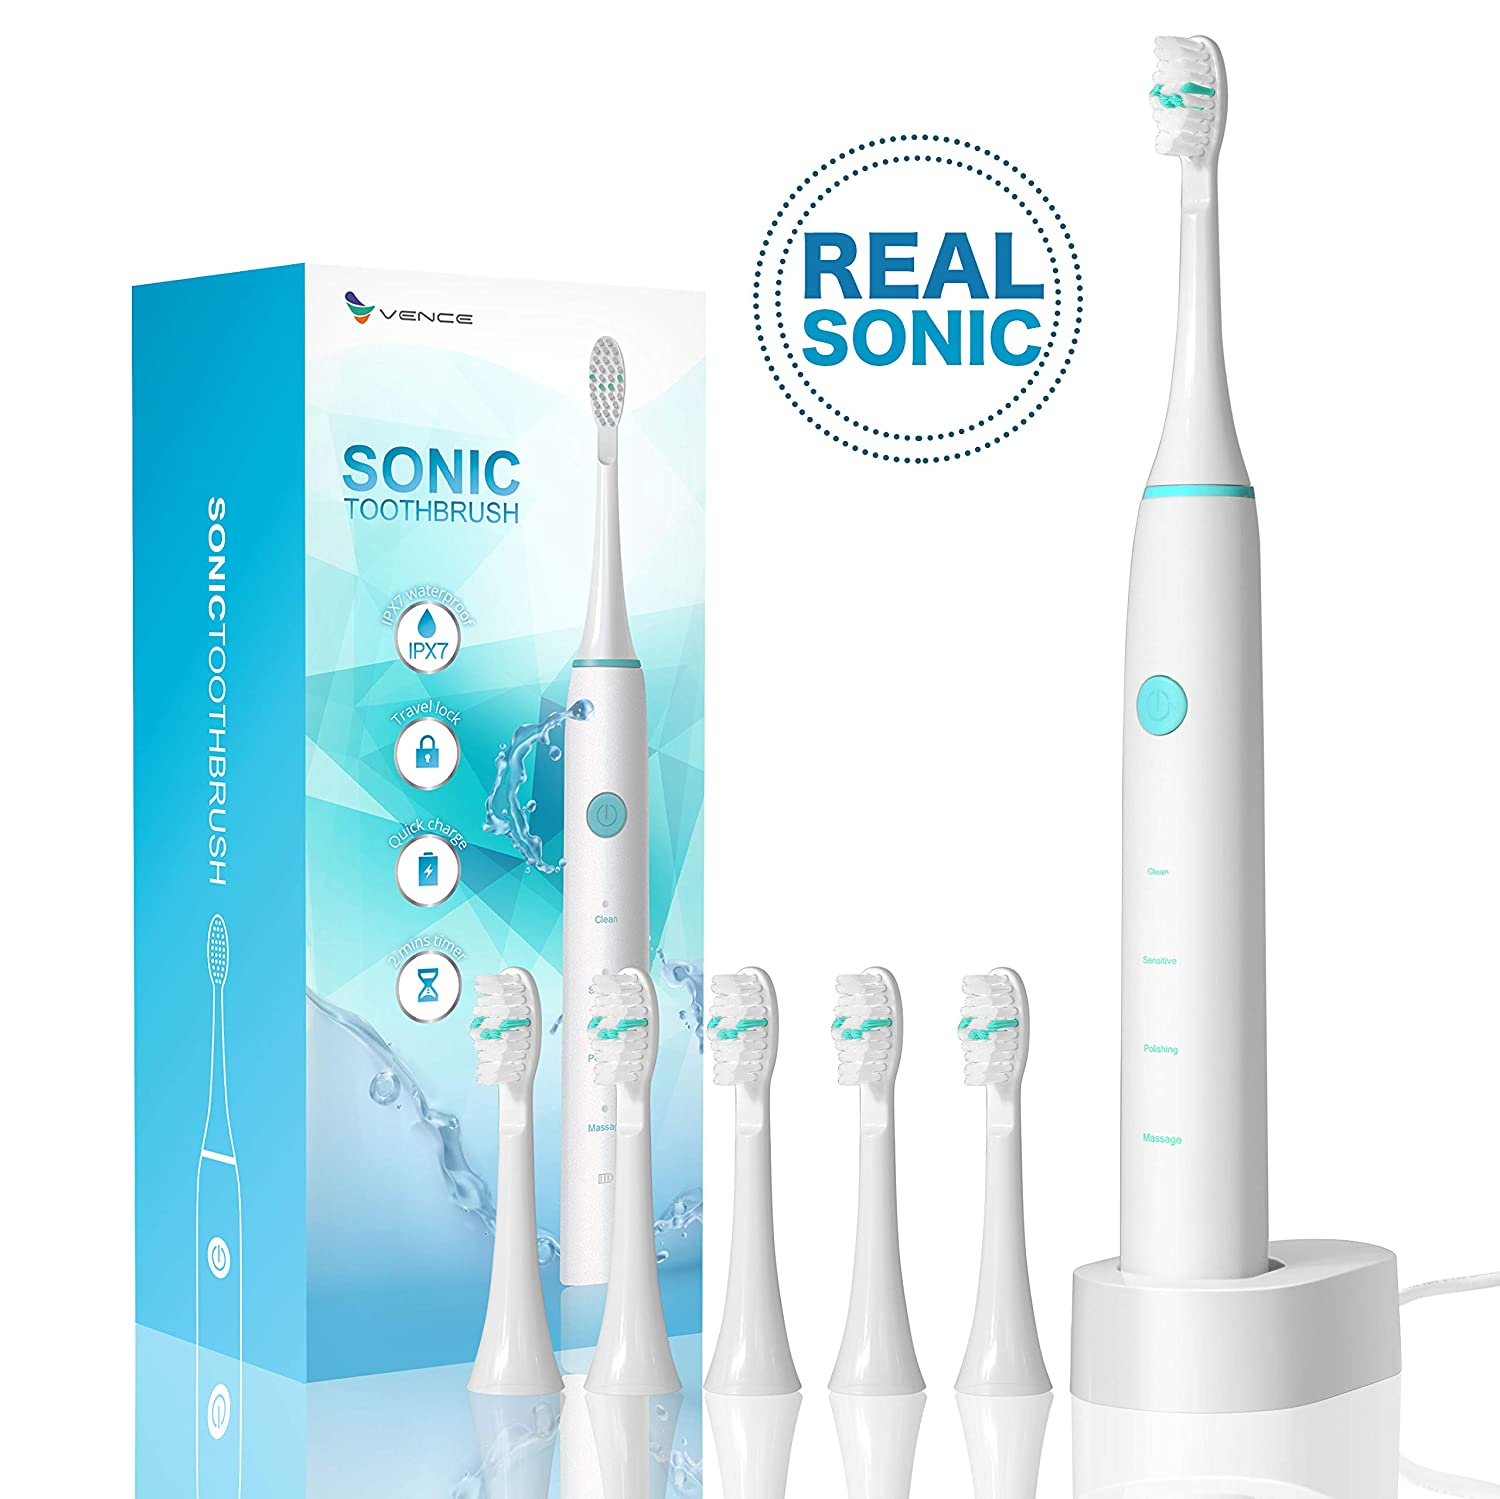 Vence Electric Power Wireless Rechargeable Sonic Toothbrush Ipx7 Waterproof Travel Lock Function With 6 Brush Heads White